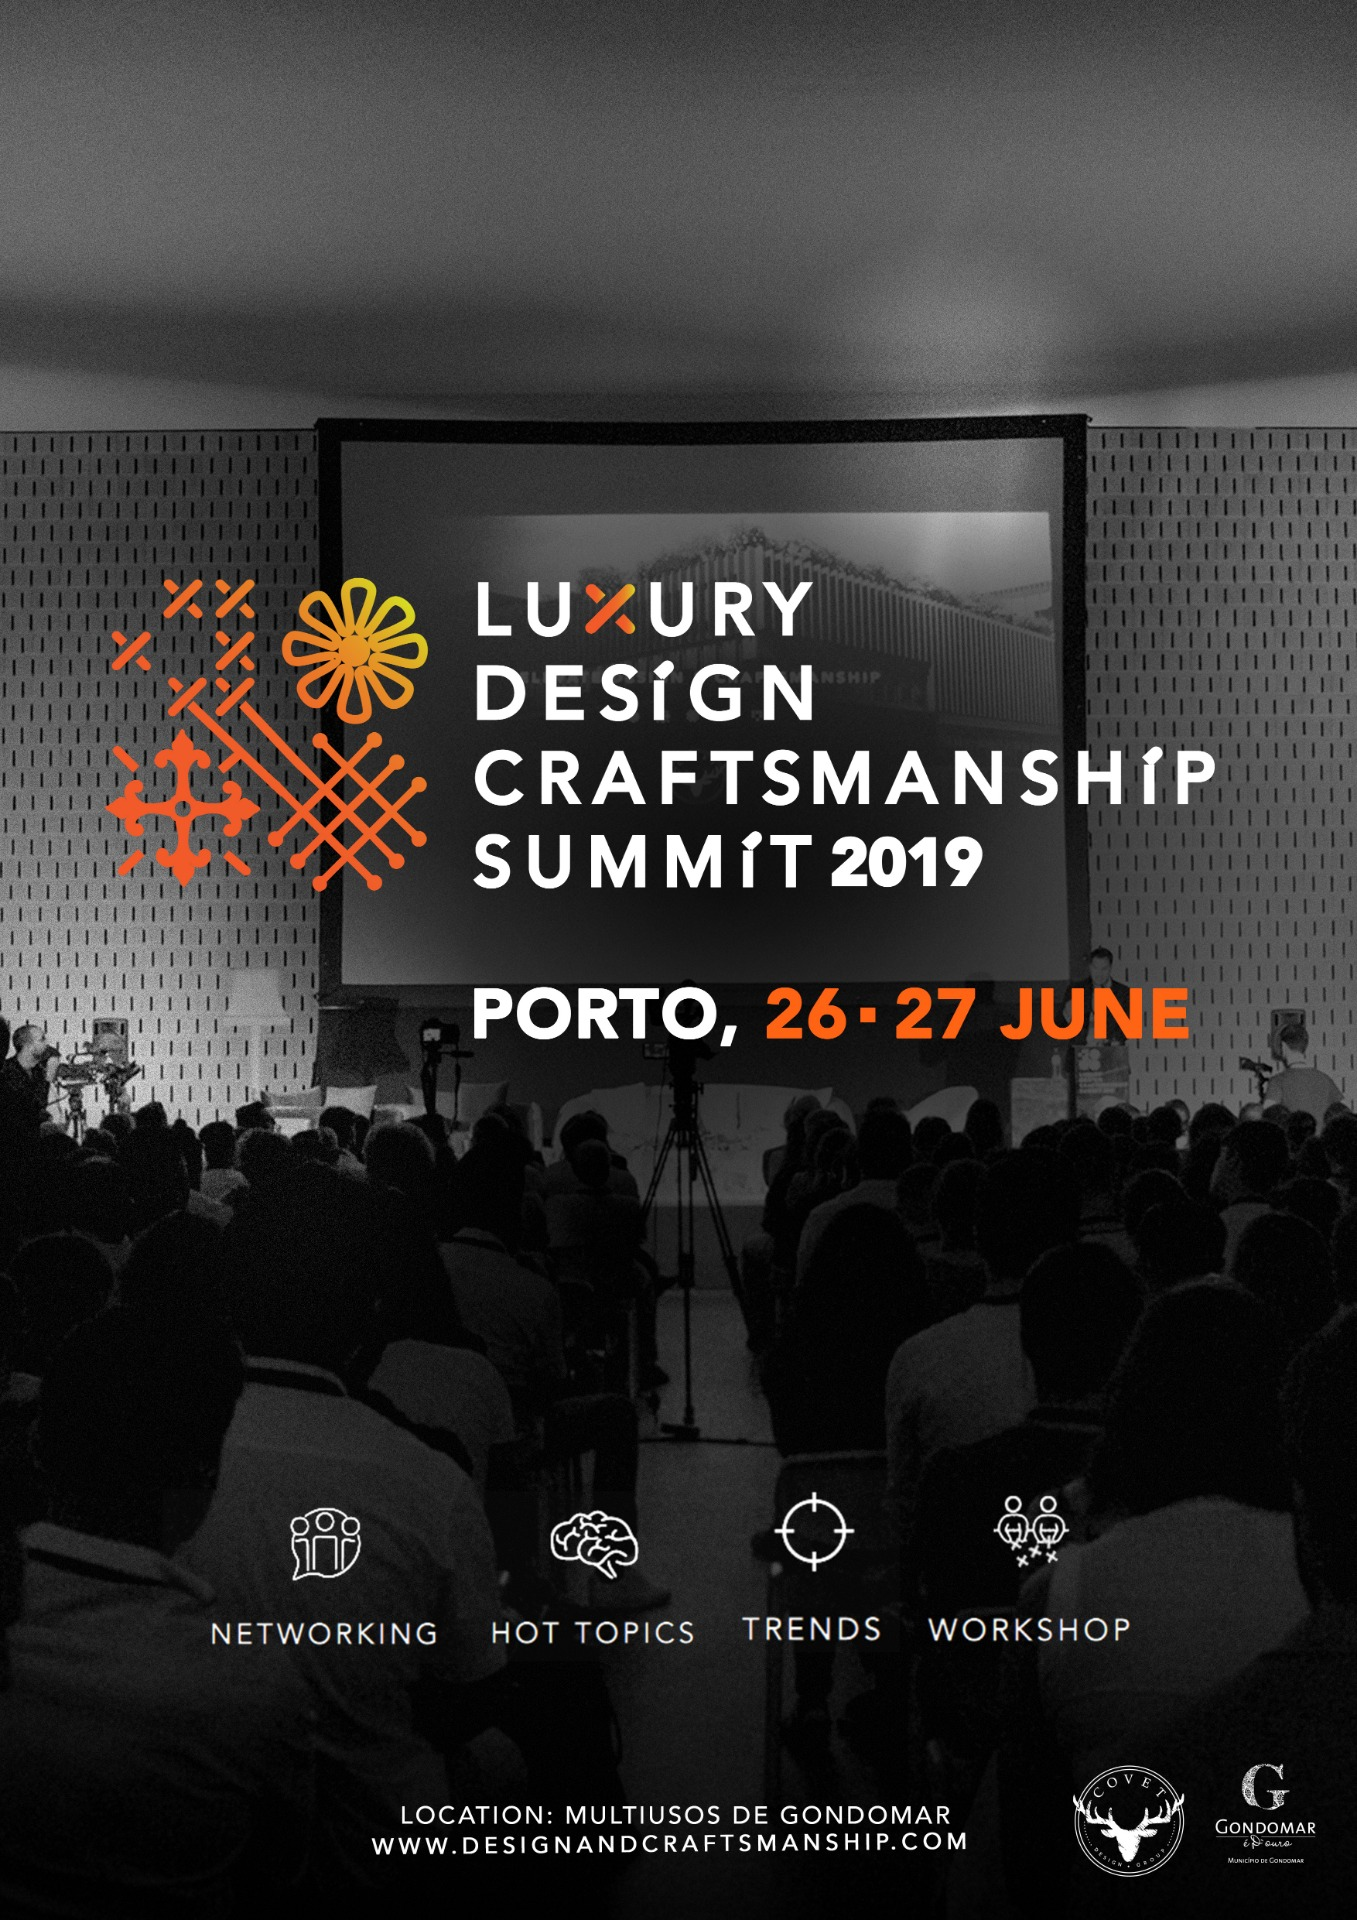 Celebrating Craftsmanship The Luxury Design+Craftsmanship Summit 2019 (2) luxury design Luxury Design+Craftsmanship Summit 2019: Celebrating Arts & Crafts in Porto Celebrating Craftsmanship The Luxury DesignCraftsmanship Summit 2019 2